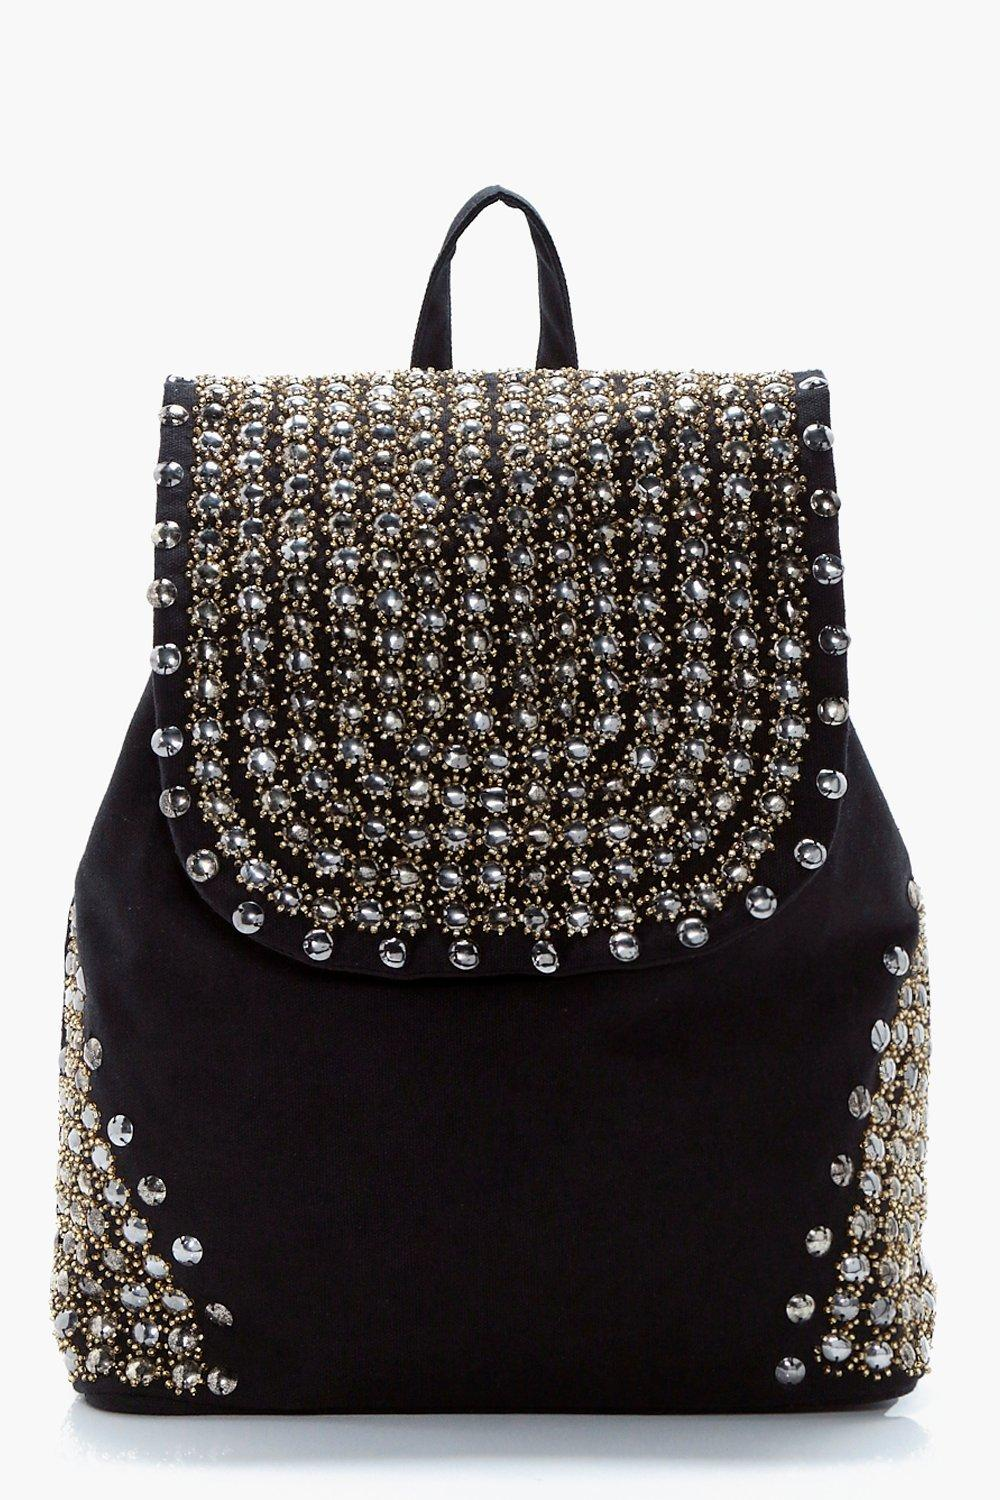 526183c3a3 Womens Black Studded Rucksack. Hover to zoom